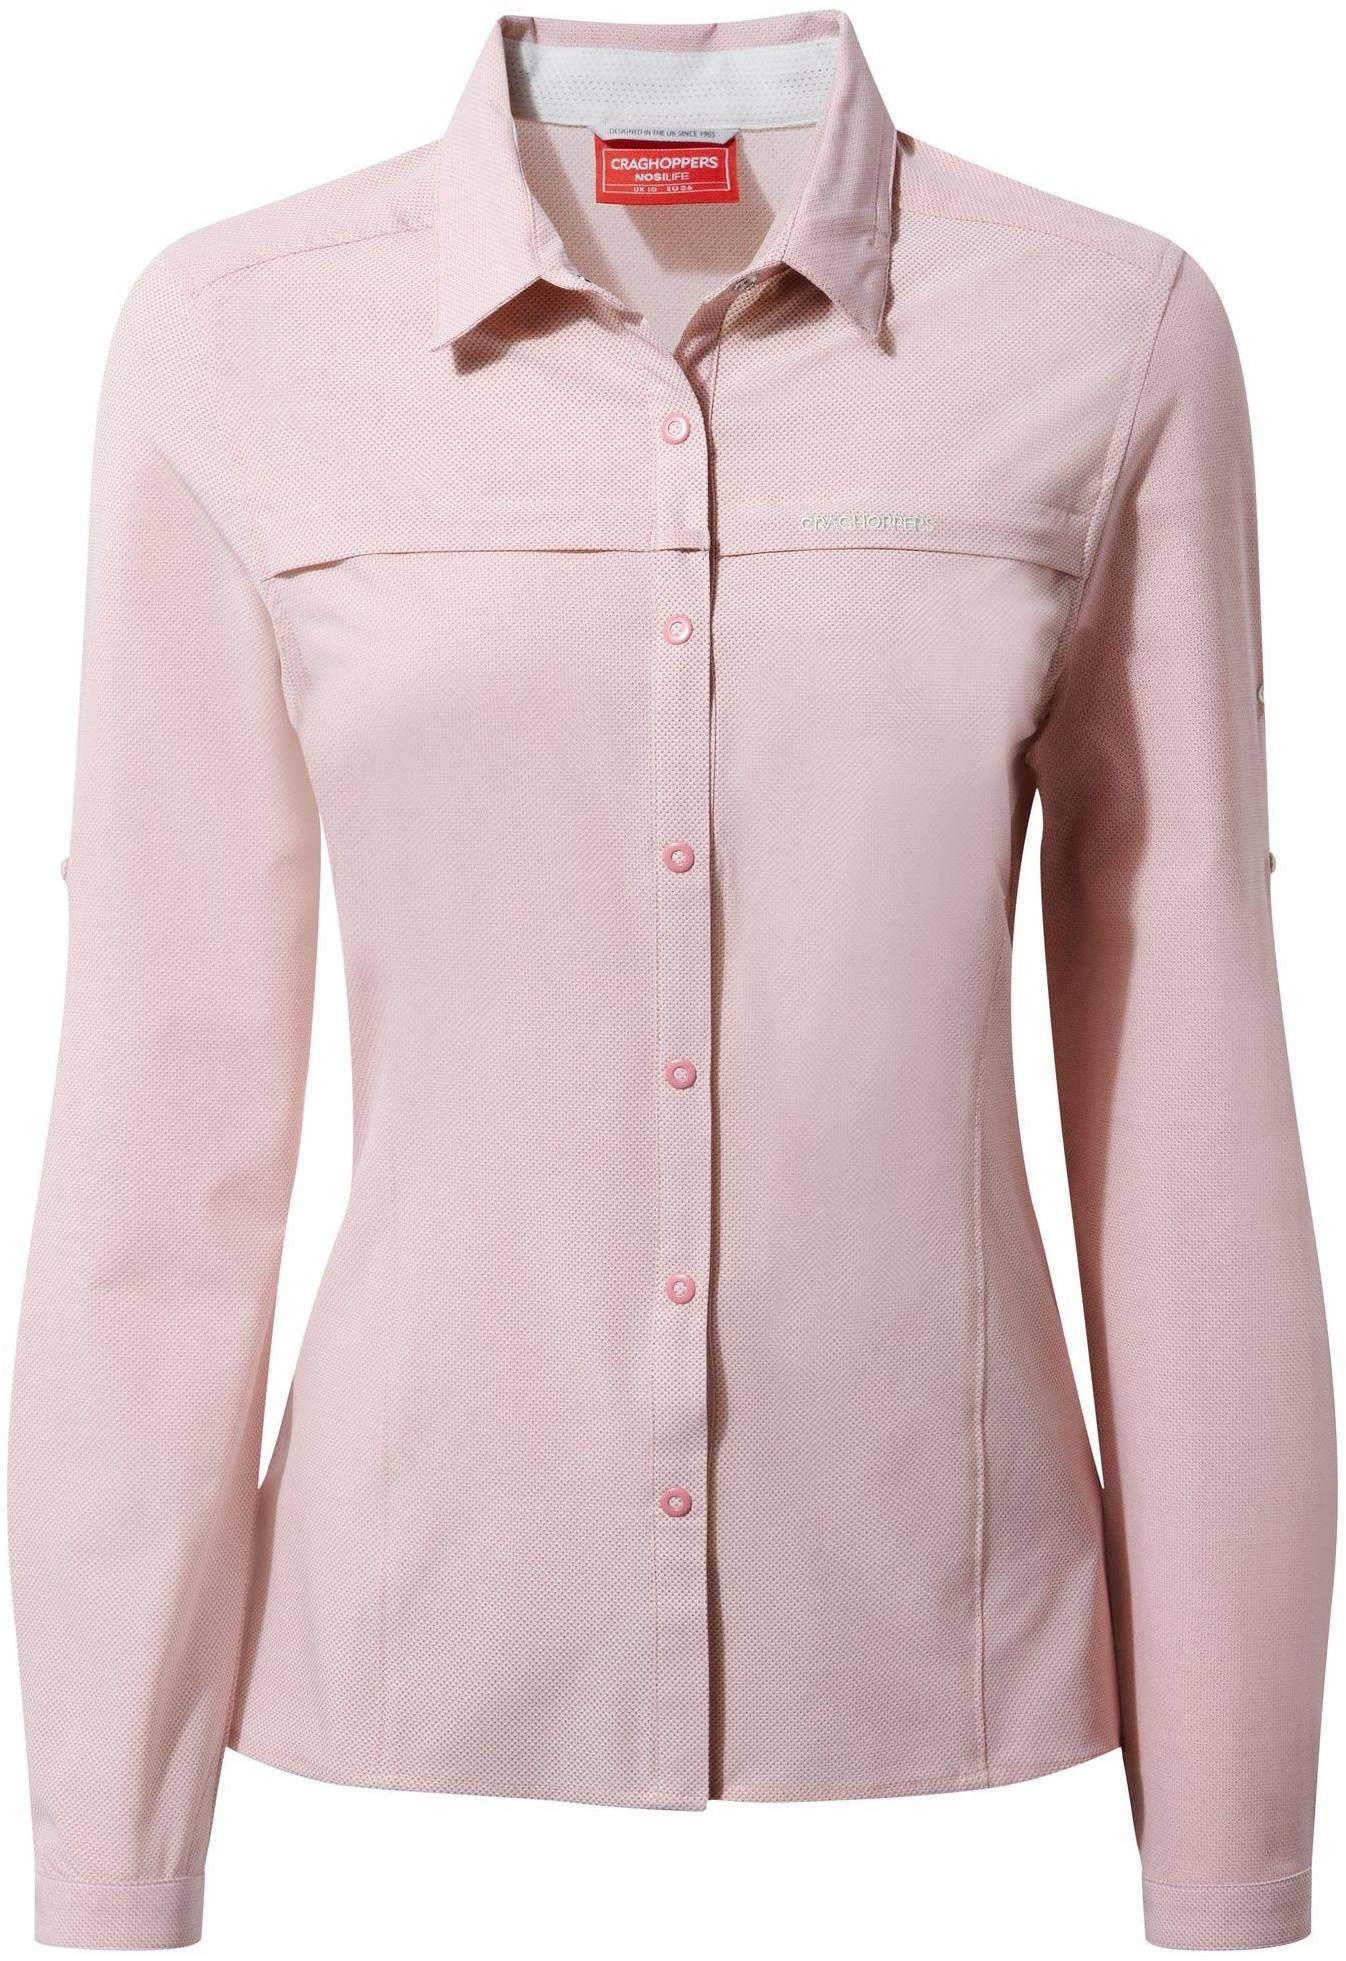 Craghoppers NosiLife Pro Womens Long Sleeved Shirt